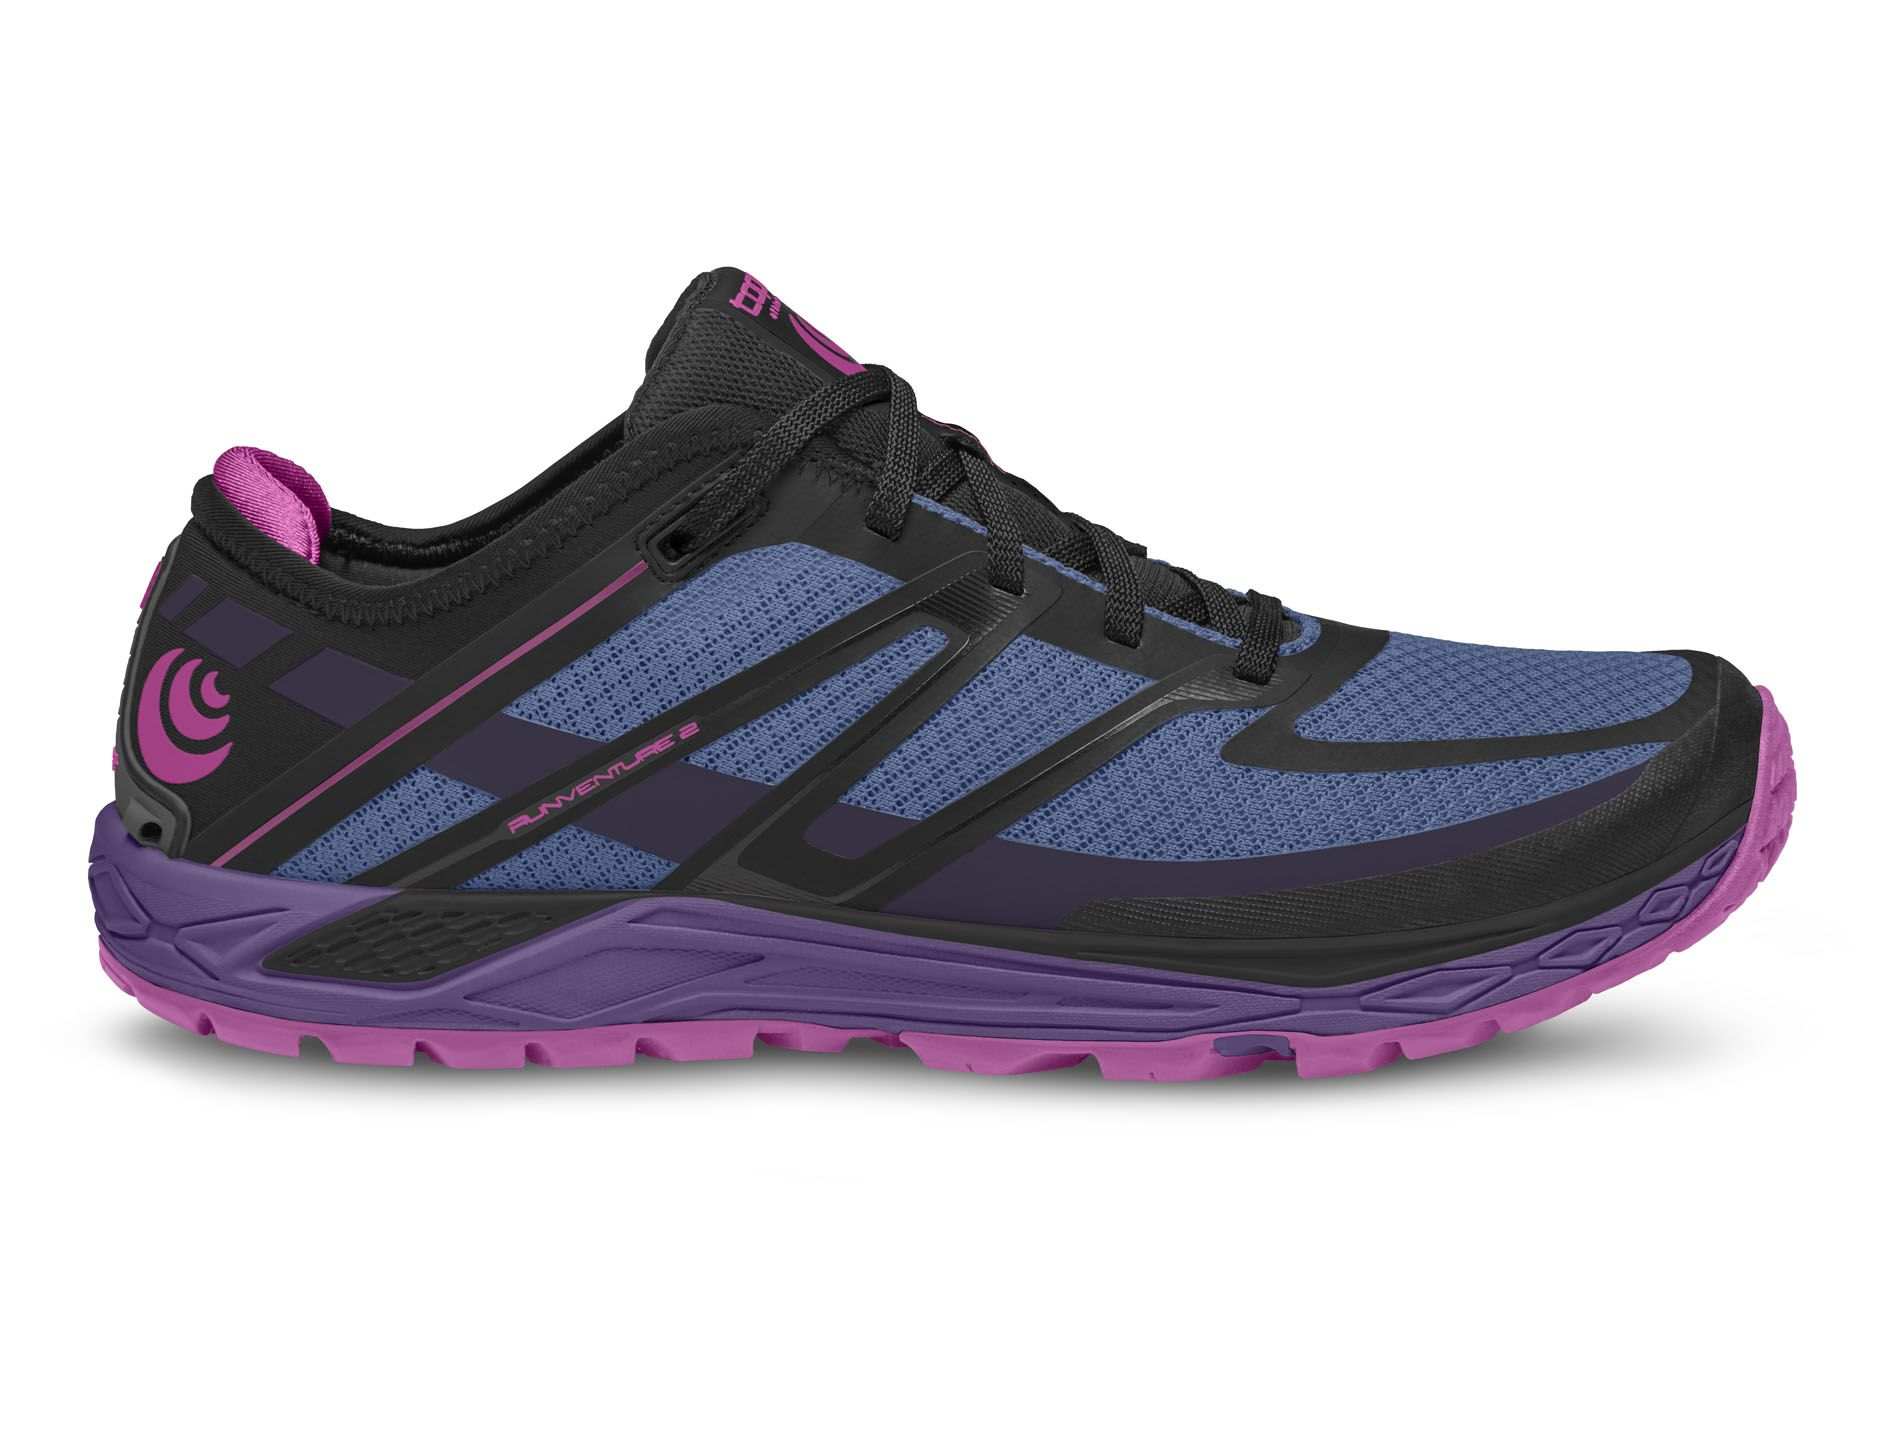 06bd7b31d655 Lightweight Running Shoes